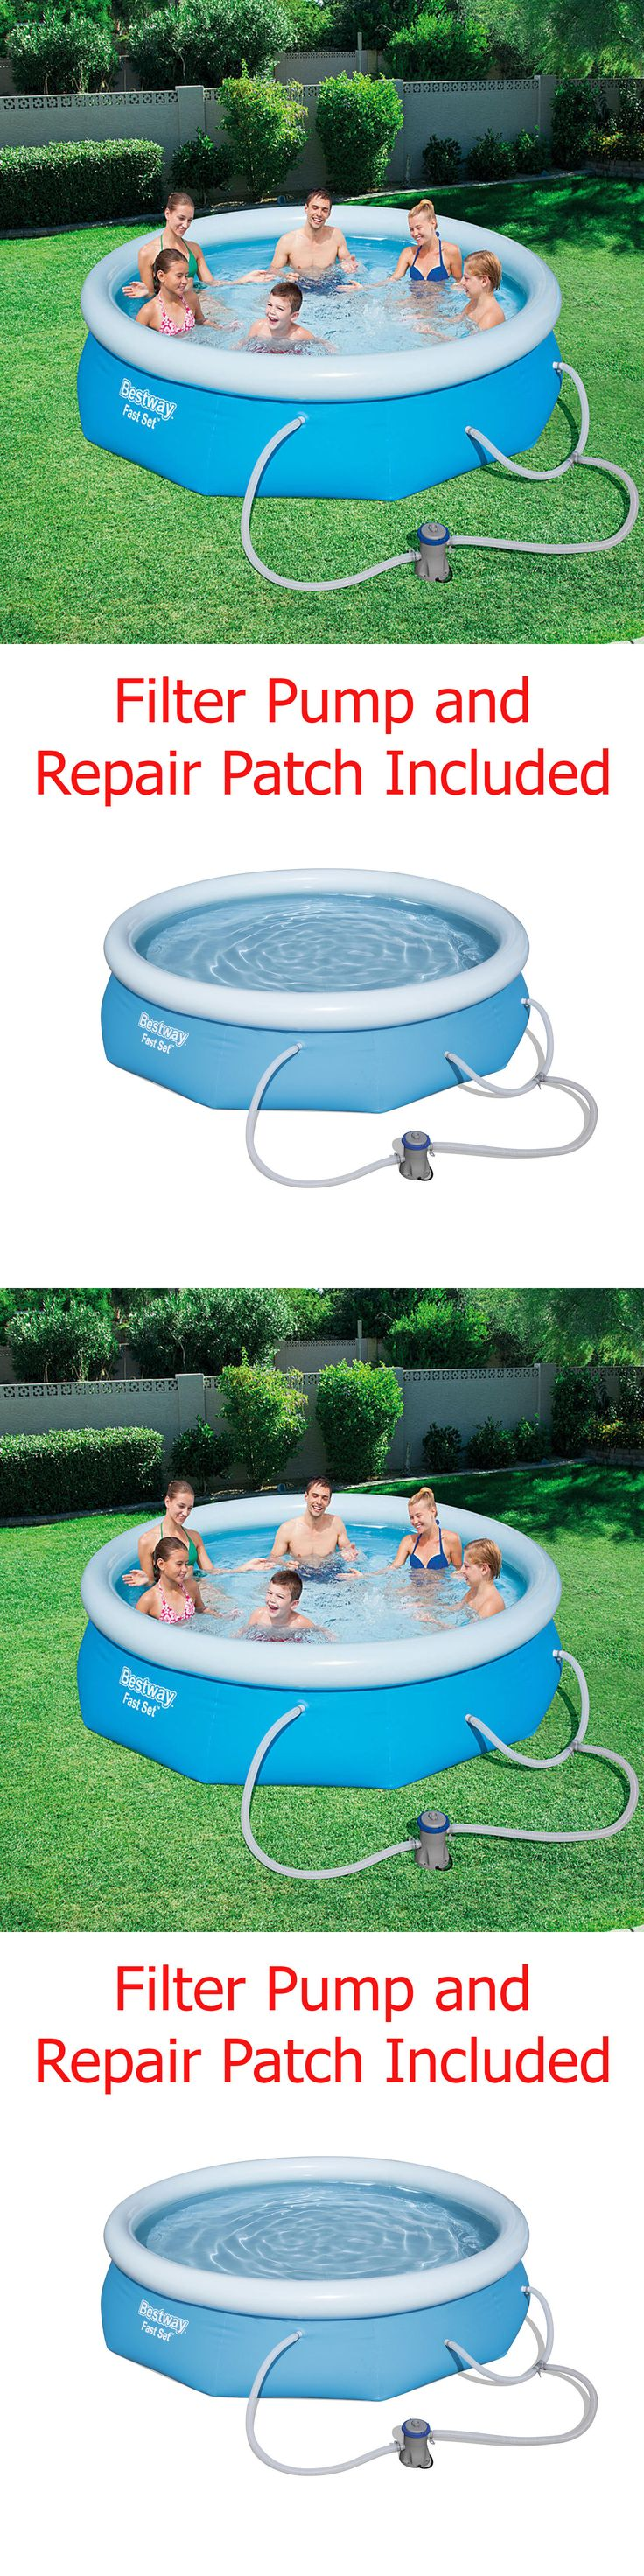 Above-Ground Pools 116405: Above Ground Swimming Pool Set 10 X 30 Inflatable Round Filter Pump Outdoor -> BUY IT NOW ONLY: $60.89 on eBay!